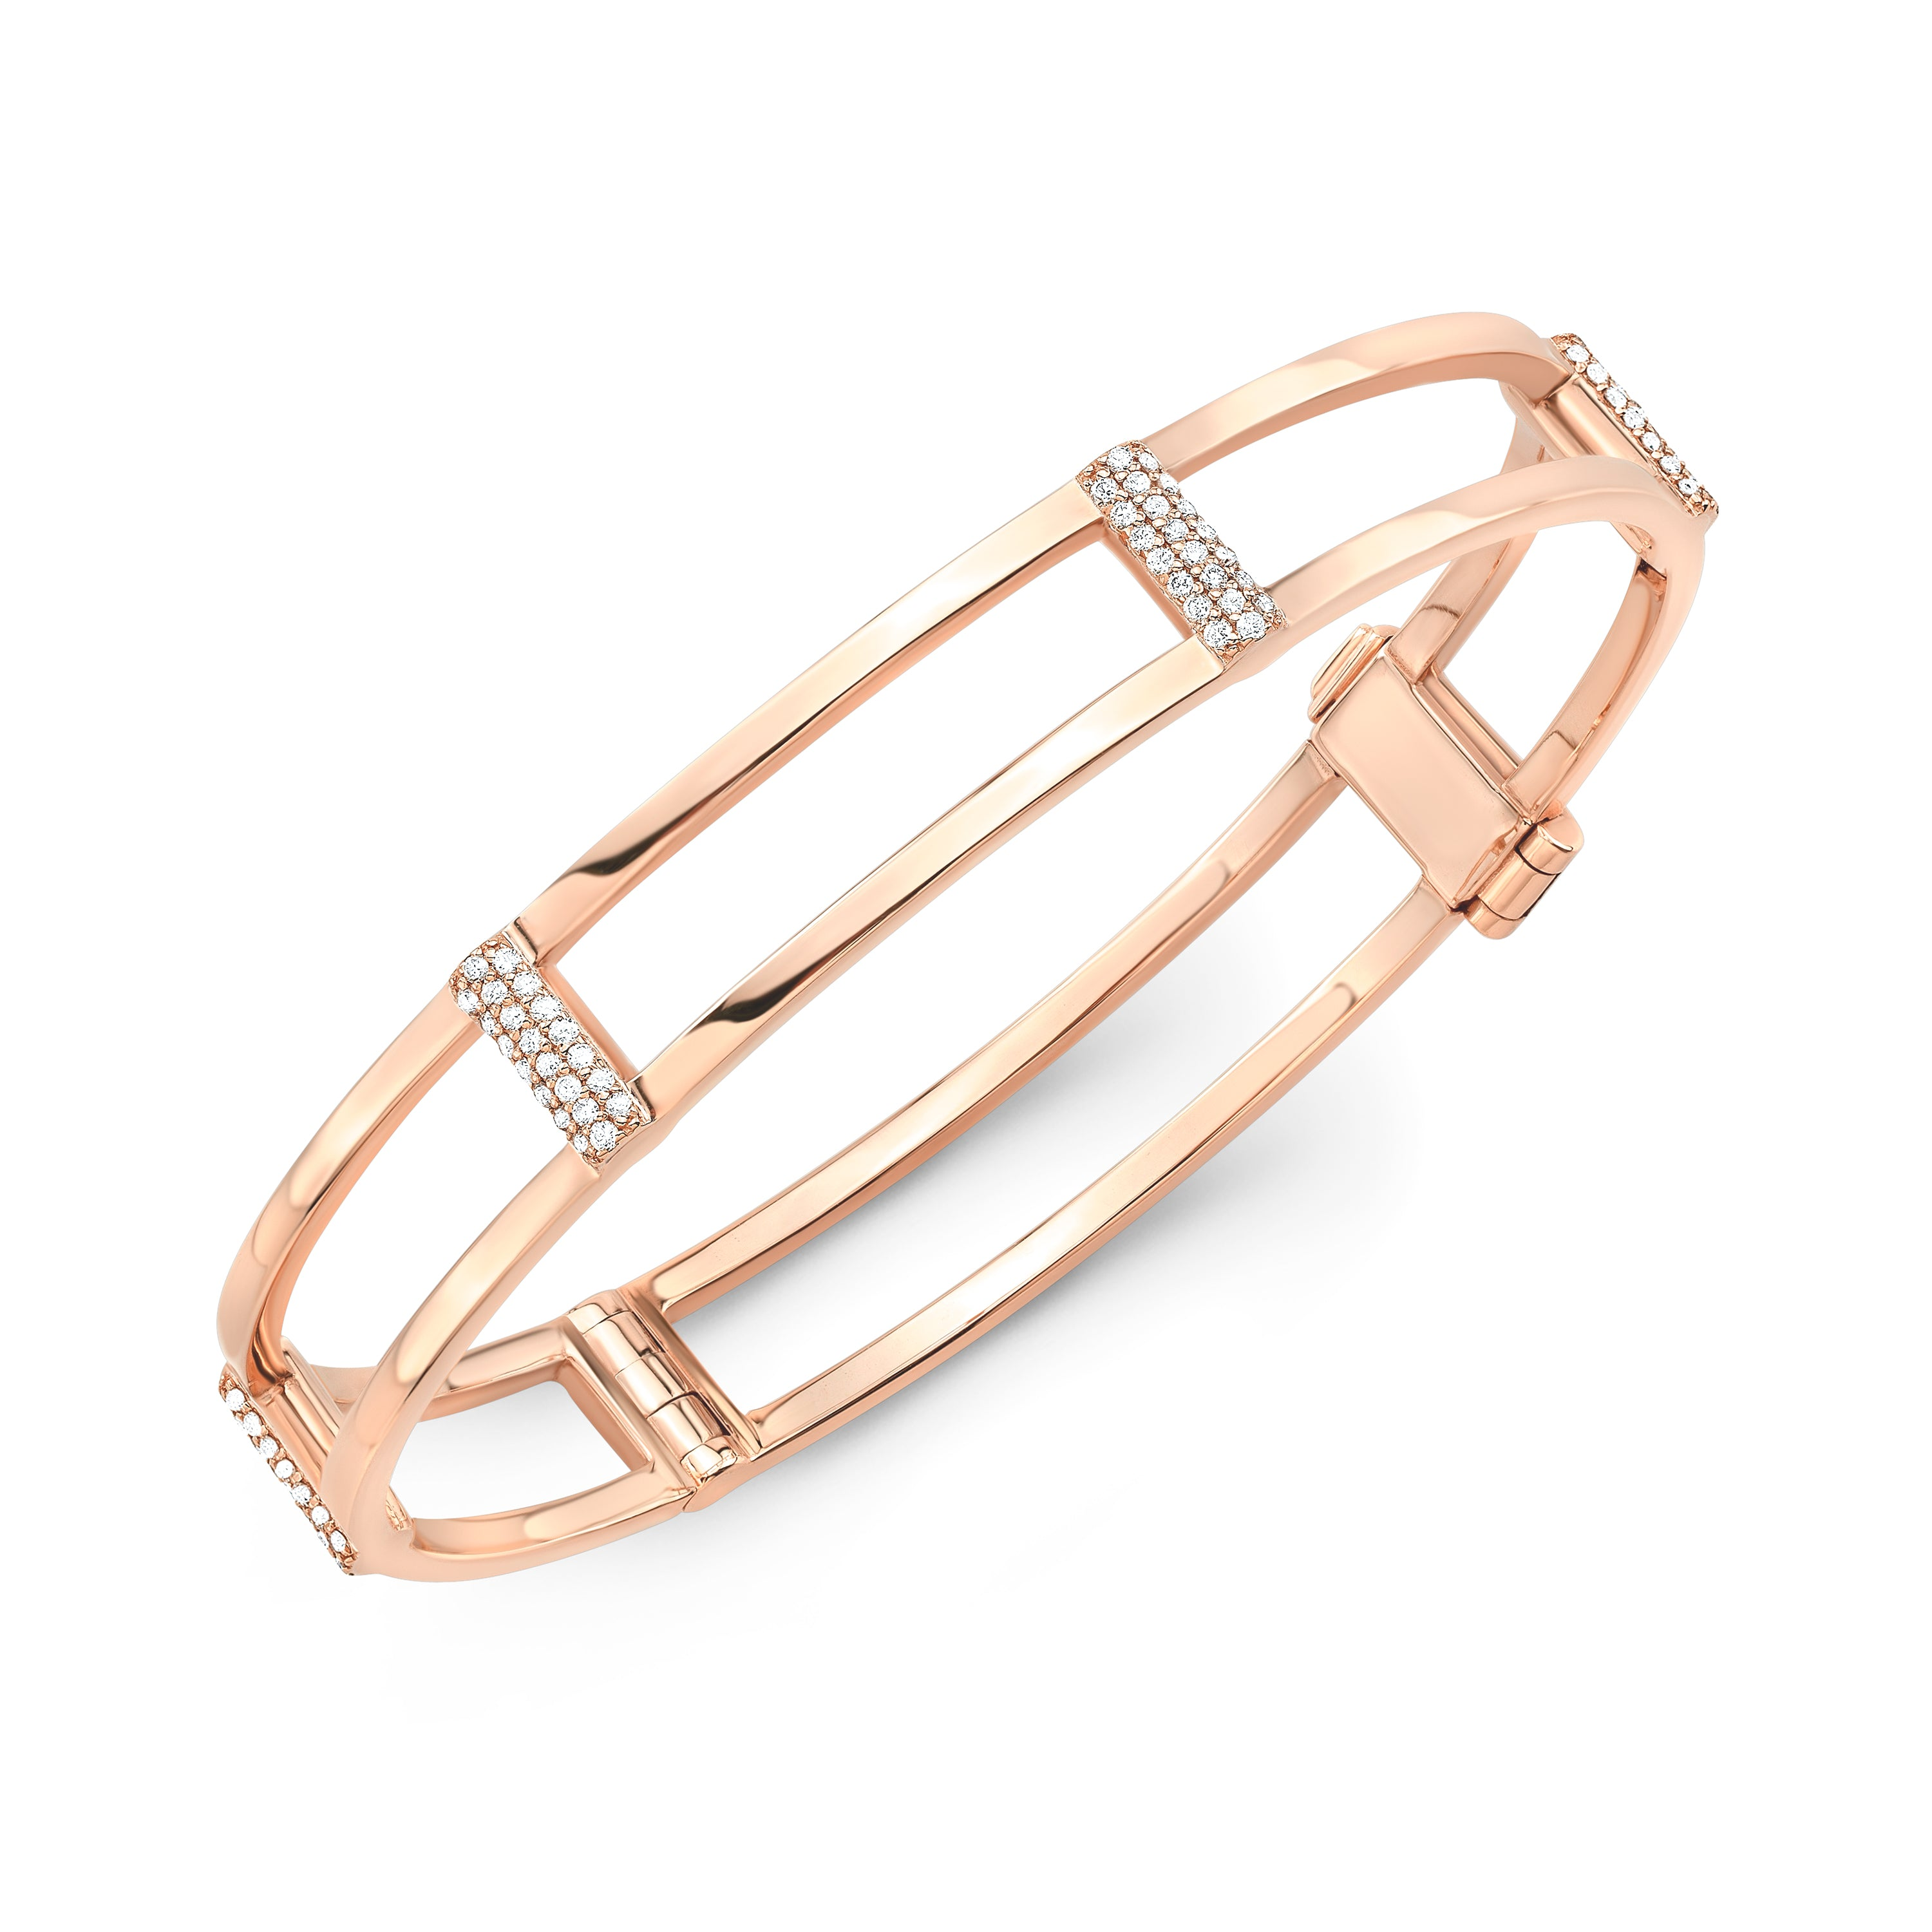 Locking Cage Bracelet | Rose Gold with White Diamonds on Posts